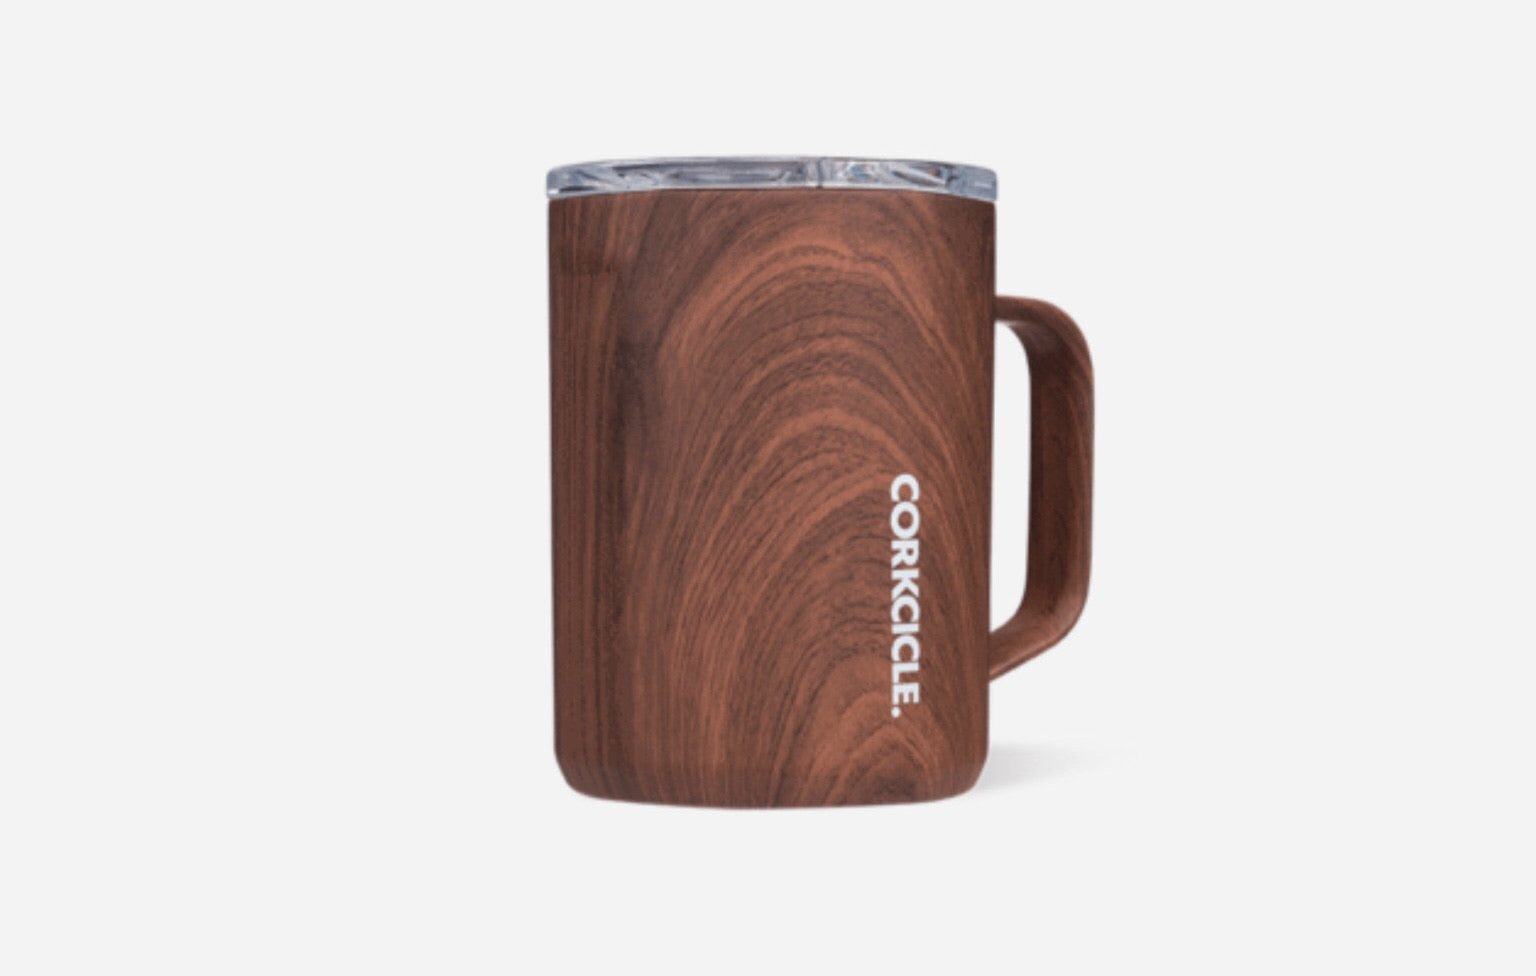 Corkcicle mug Wood